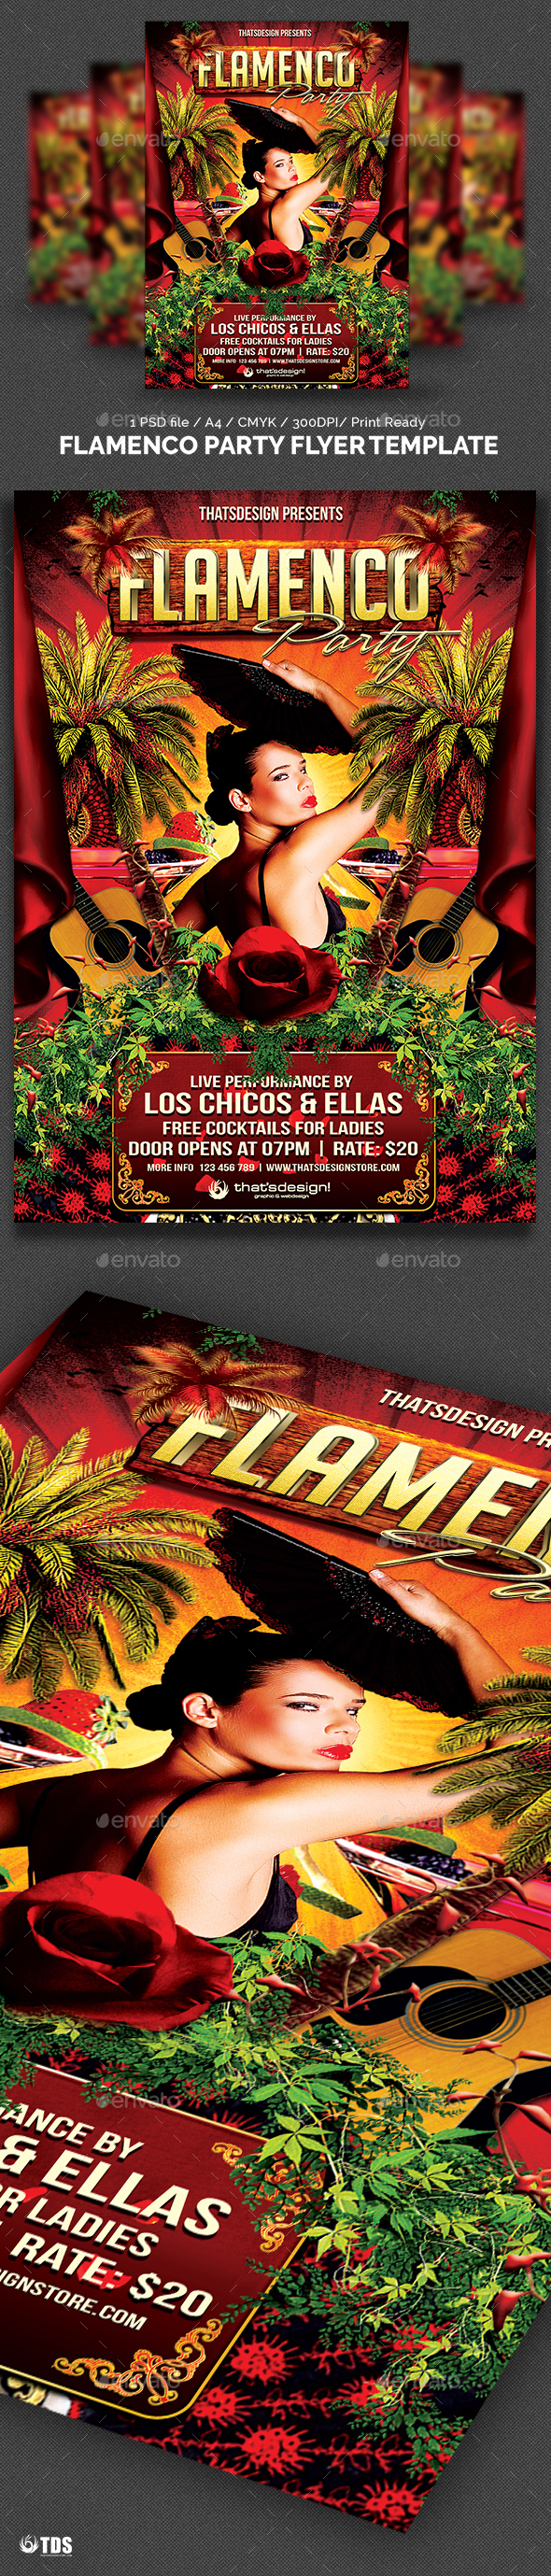 Flamenco Party Flyer Template - Clubs & Parties Events